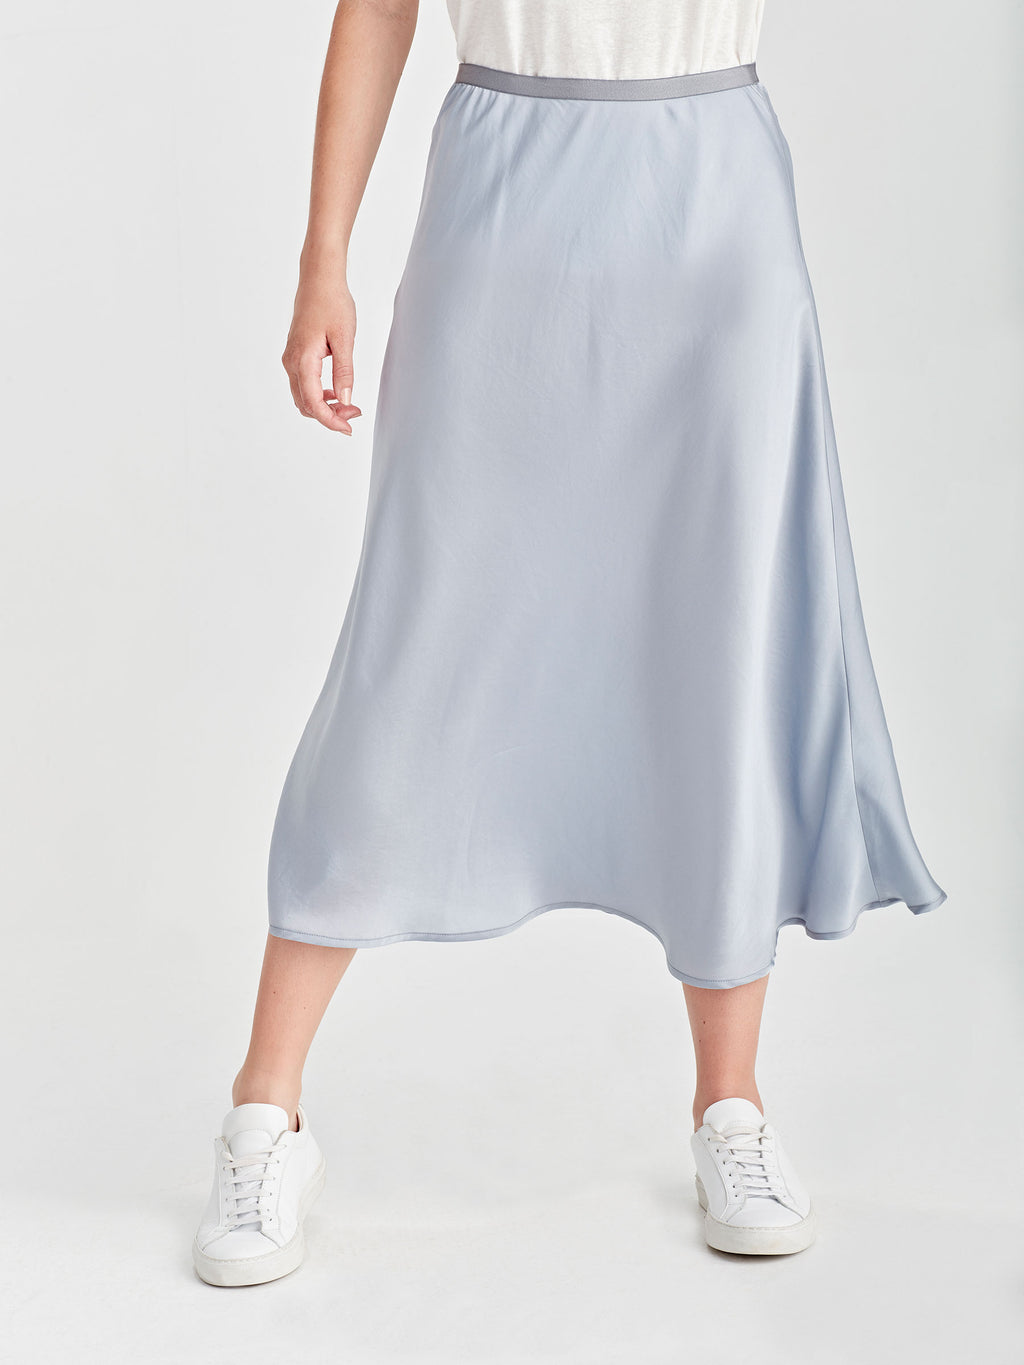 Sana Skirt (Satin Triacetate) Powder